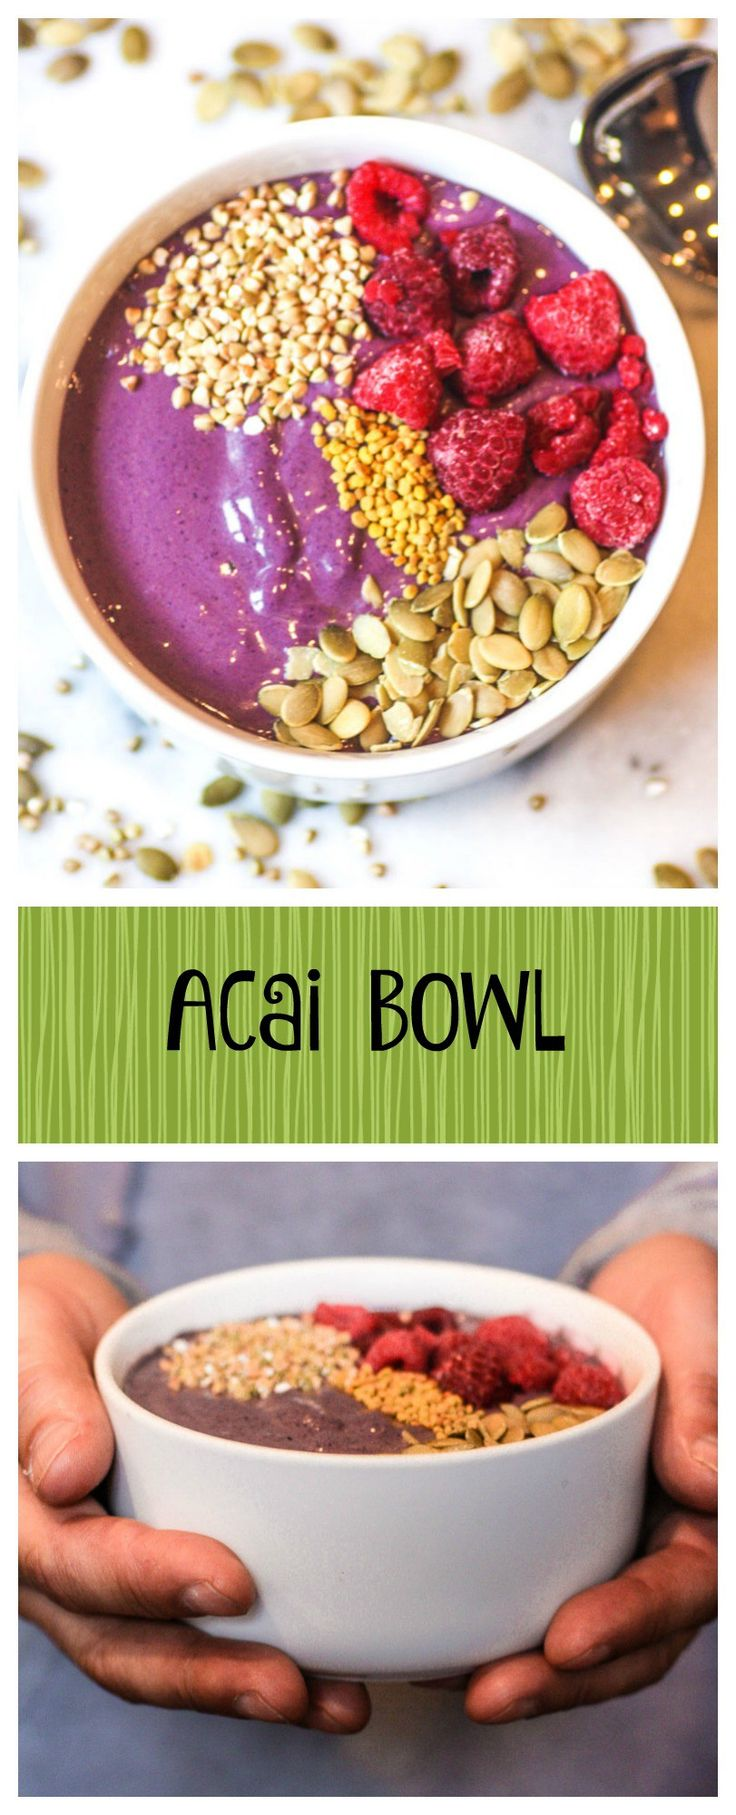 Acai Bowl.  It's amazing.  It's healthy.  It's easy.  It's healing.  You can feel the power as you eat it!  The superfoods recipe is just what the doctor ordered!